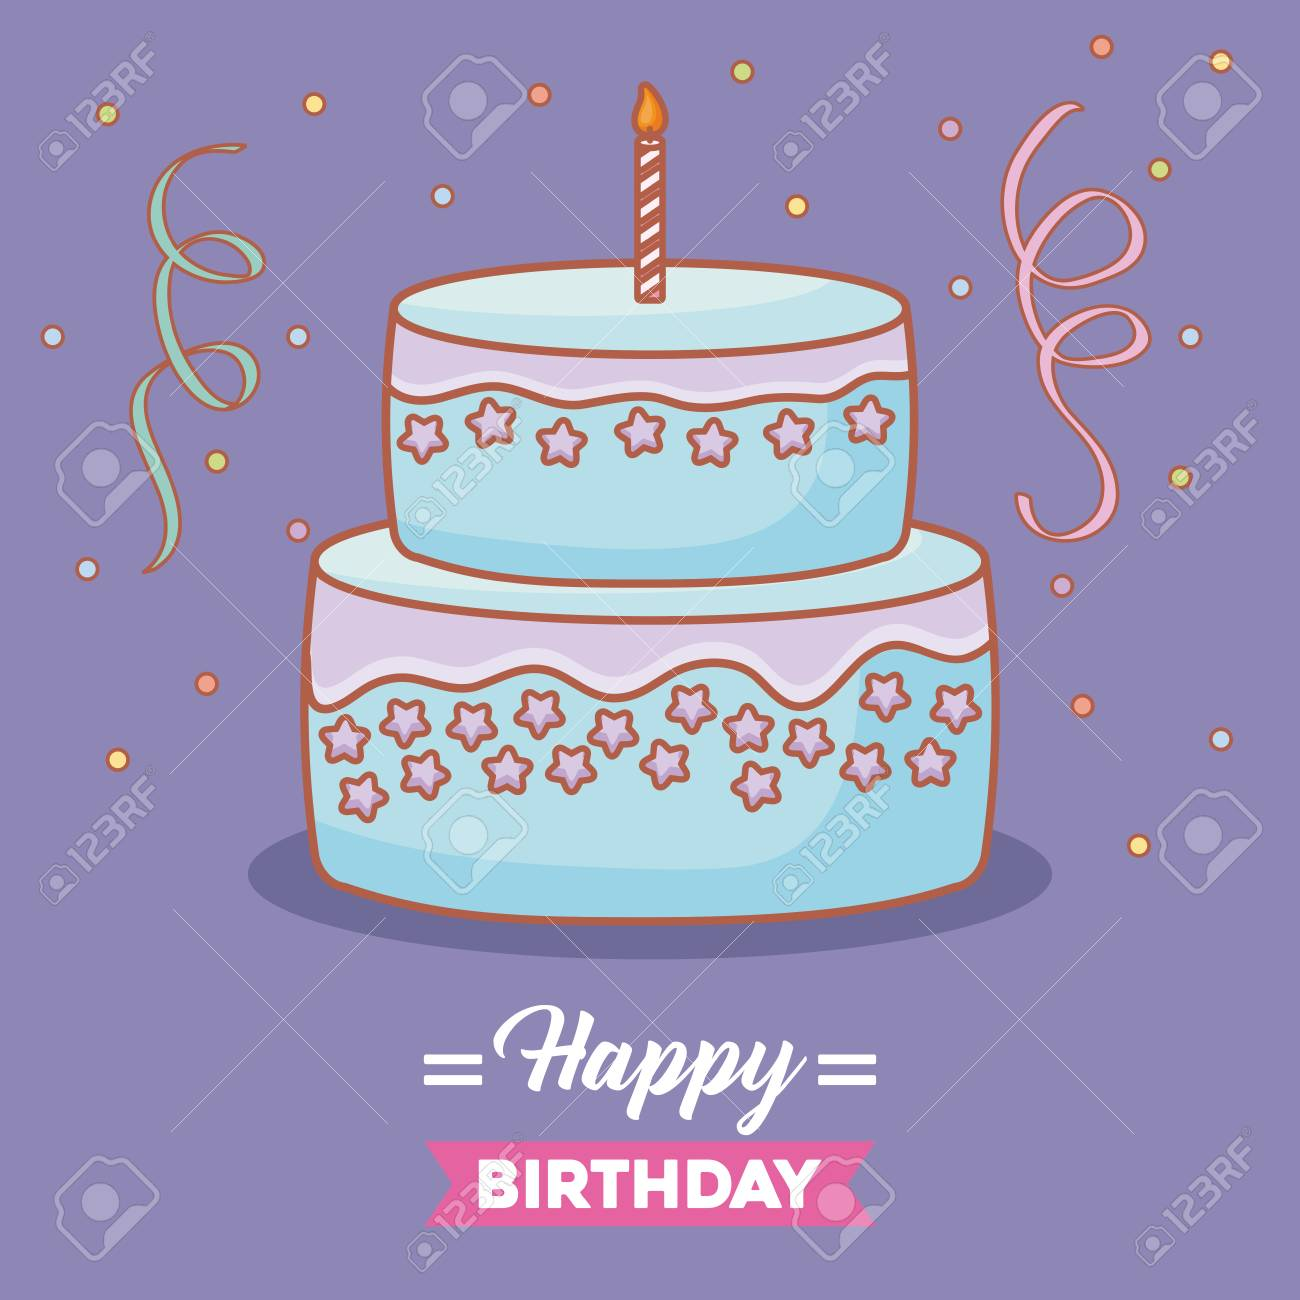 Happy Birthday Card With Birthday Cake With Candles Over Purple